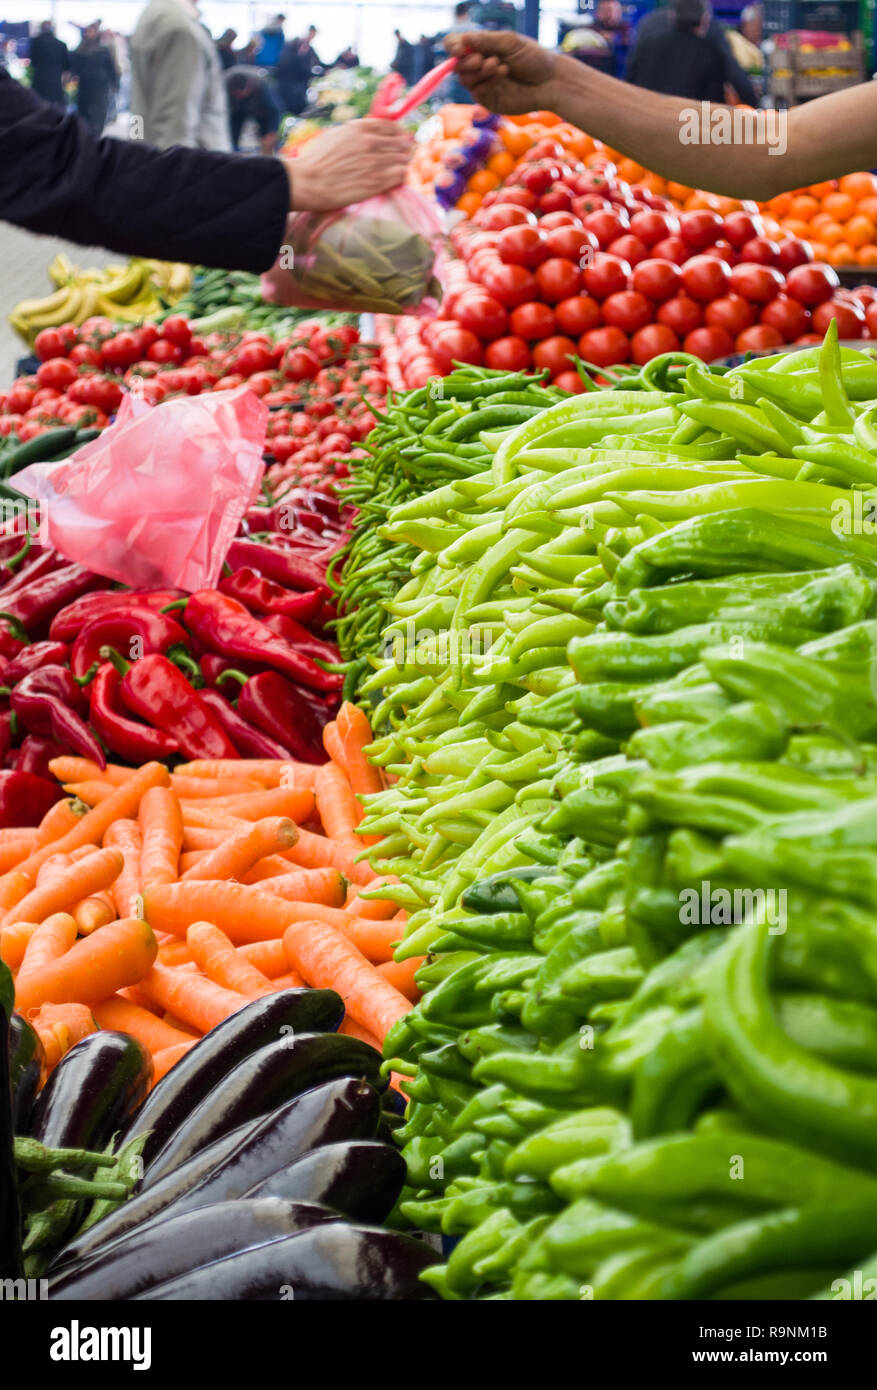 Fresh and organic vegetables at farmers market. Buyer's hand and seller's hand on blurred background. Stock Photo